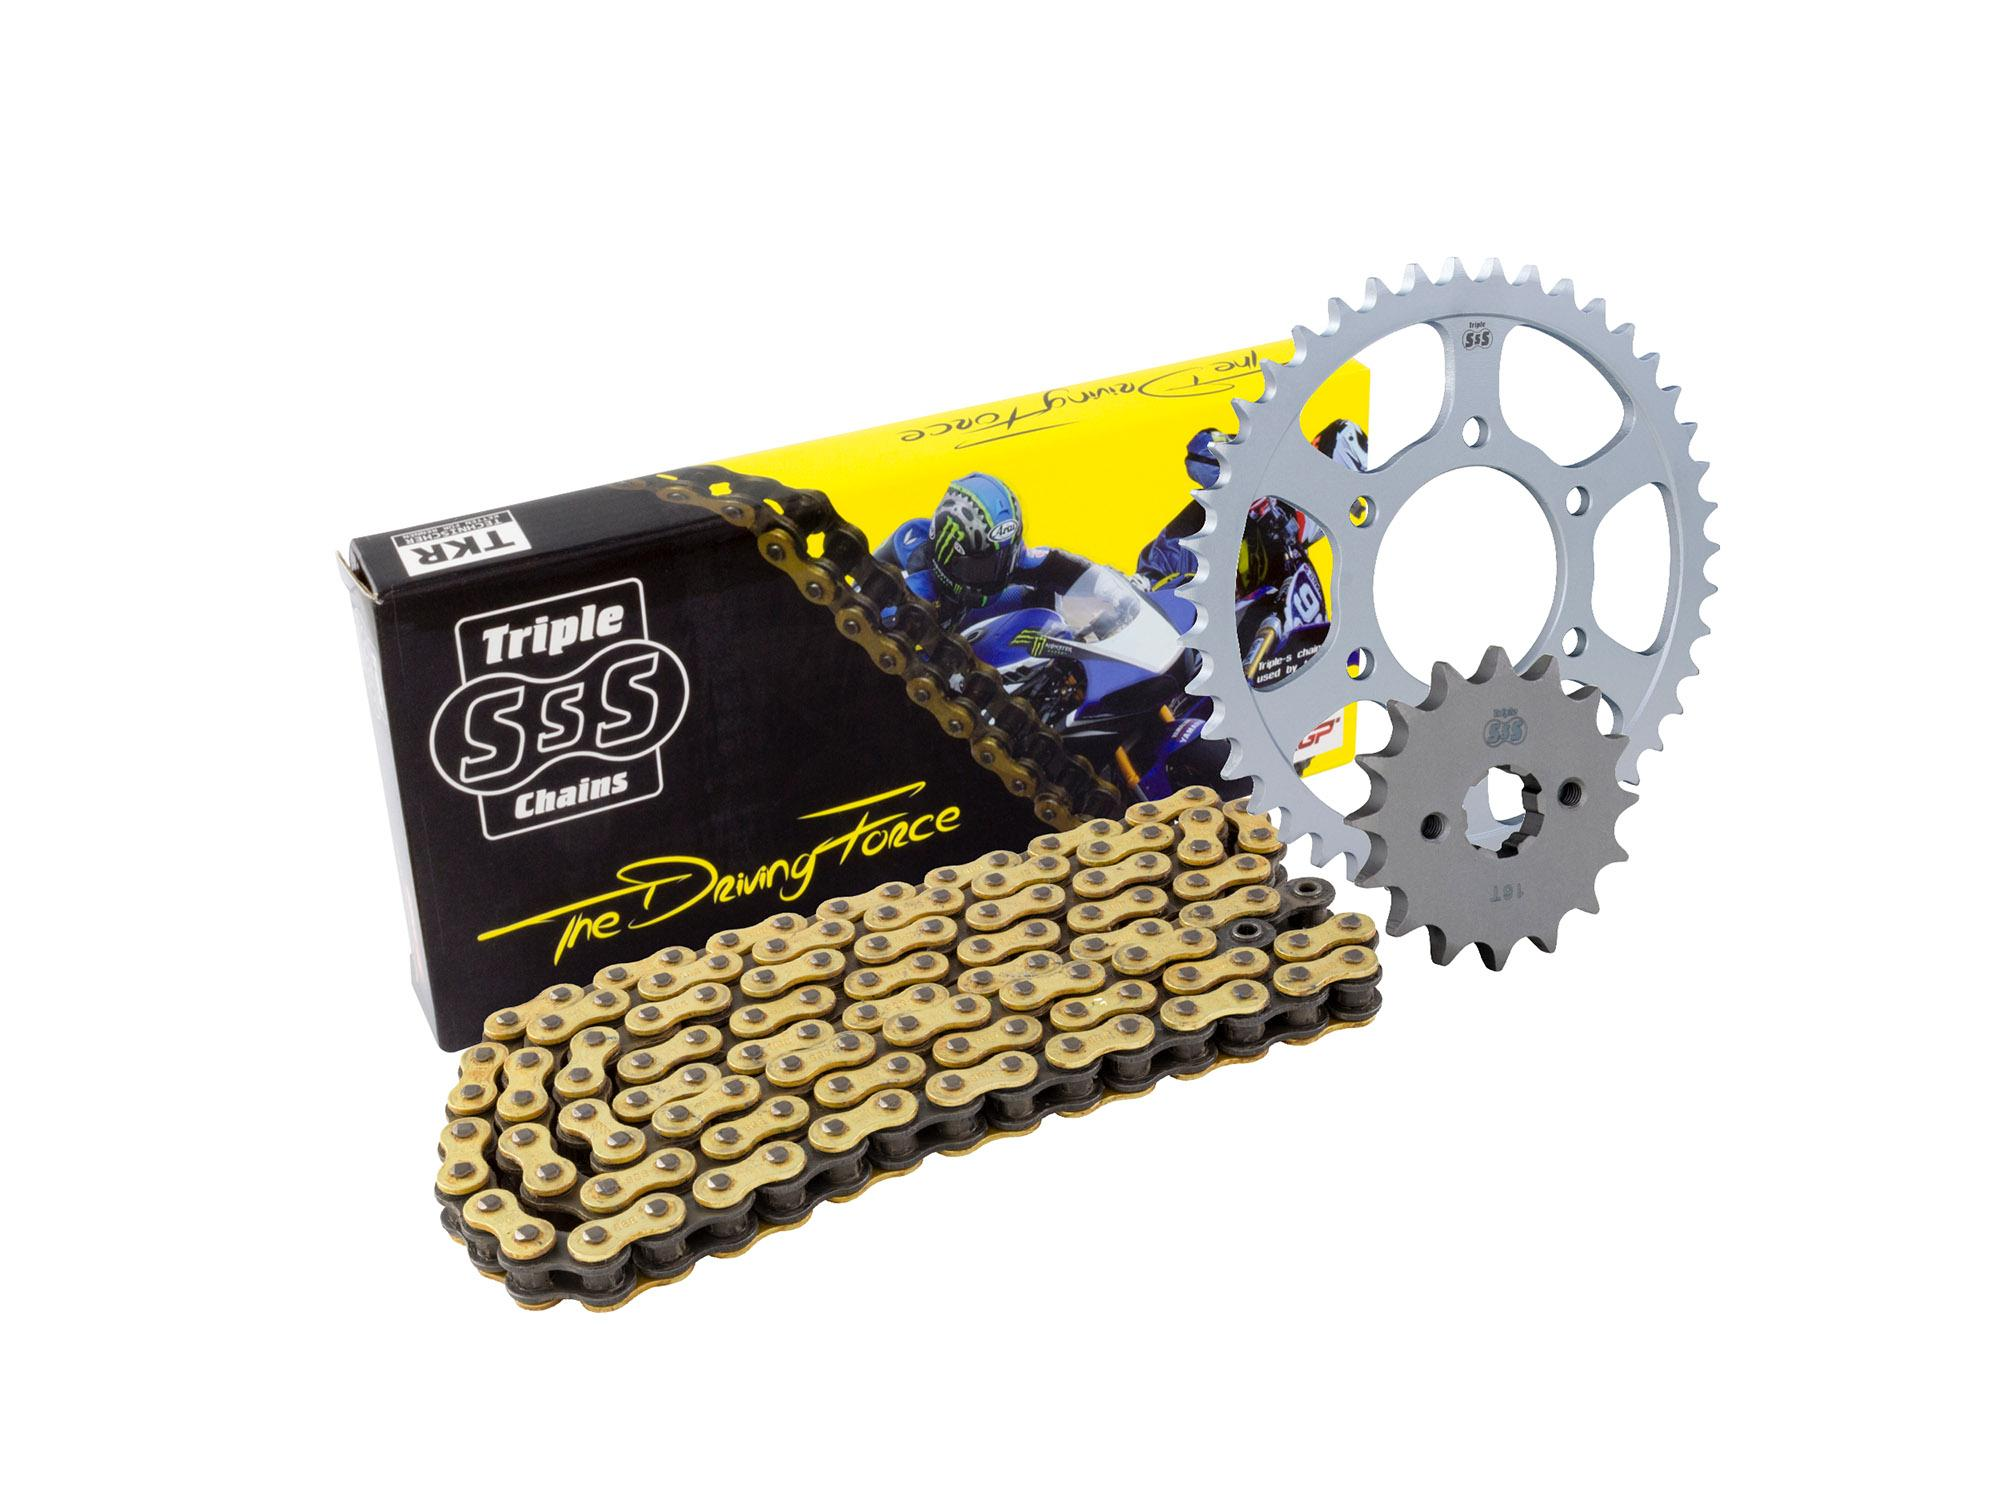 Honda XL650 V Transalp 01-07 Chain & Sprocket Kit: 15T Front, 48T Rear, HD O-Ring Gold Chain 525H 118Link